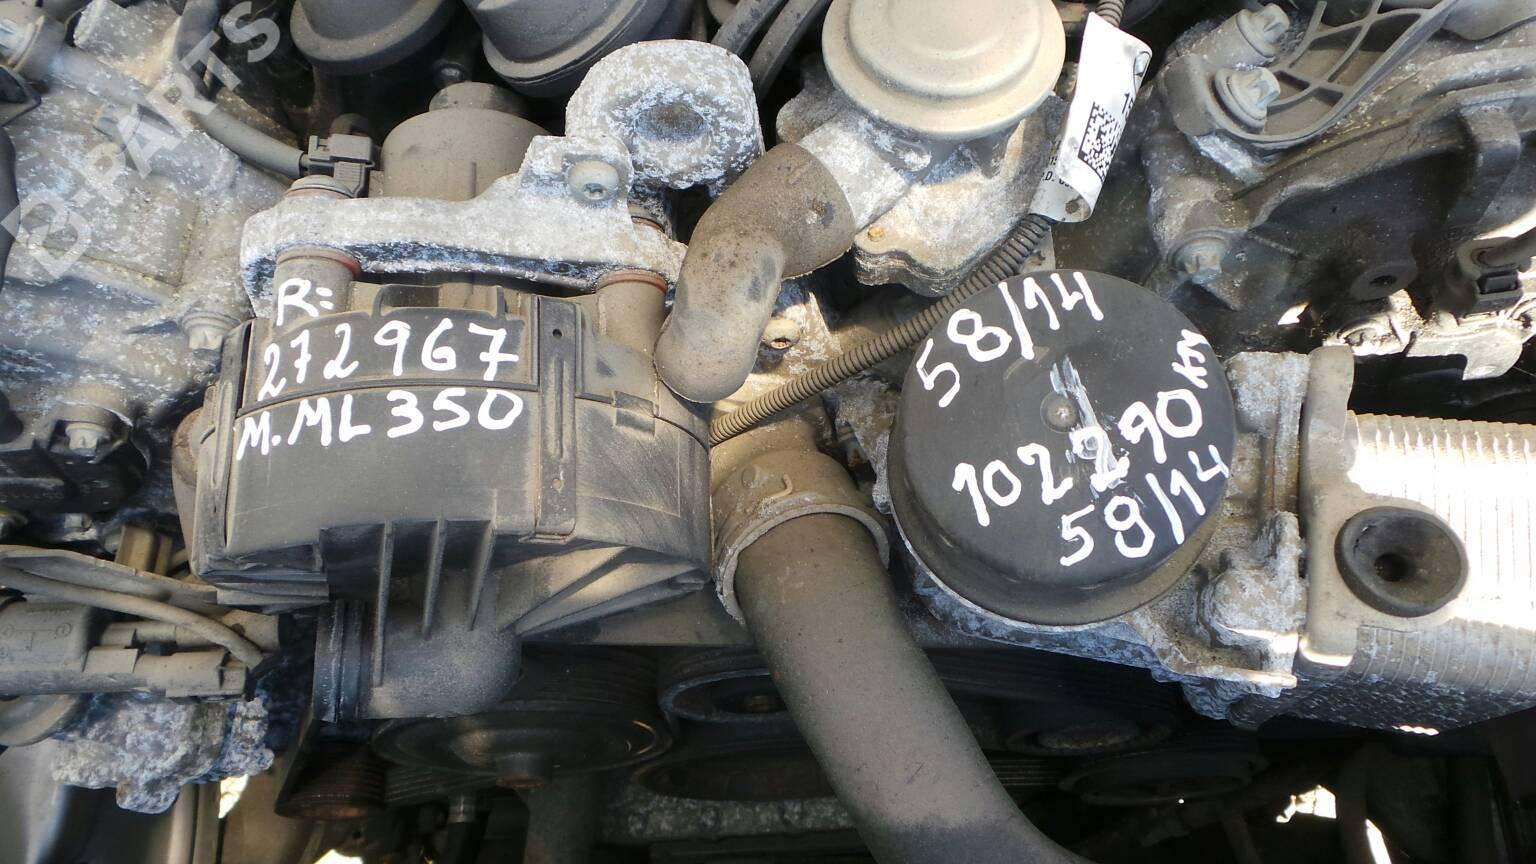 Engine Mercedes Benz M Class W164 Ml 350 4 Matic 164186 36979 Ml350 2005 Parts Complete 272967